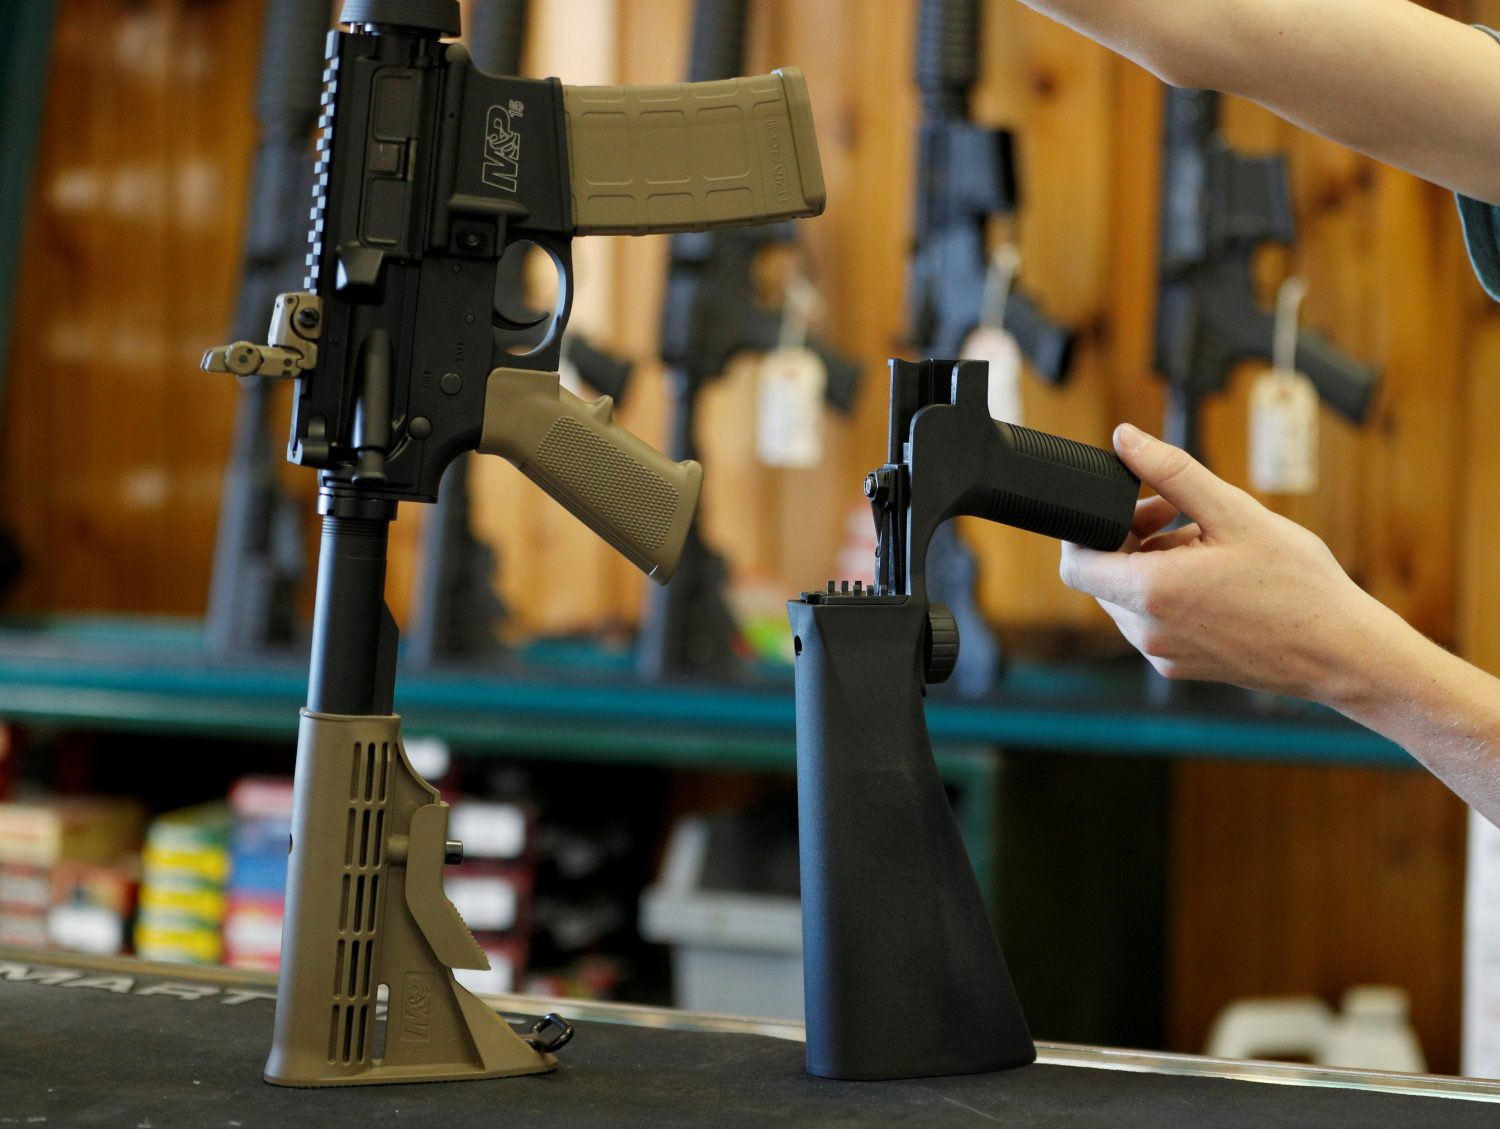 FILE PHOTO: A bump fire stock, (R), that attaches to a semi-automatic rifle to increase the firing rate is seen at Good Guys Gun Shop in Orem, Utah, U.S., October 4, 2017. REUTERS/George Frey/File Photo